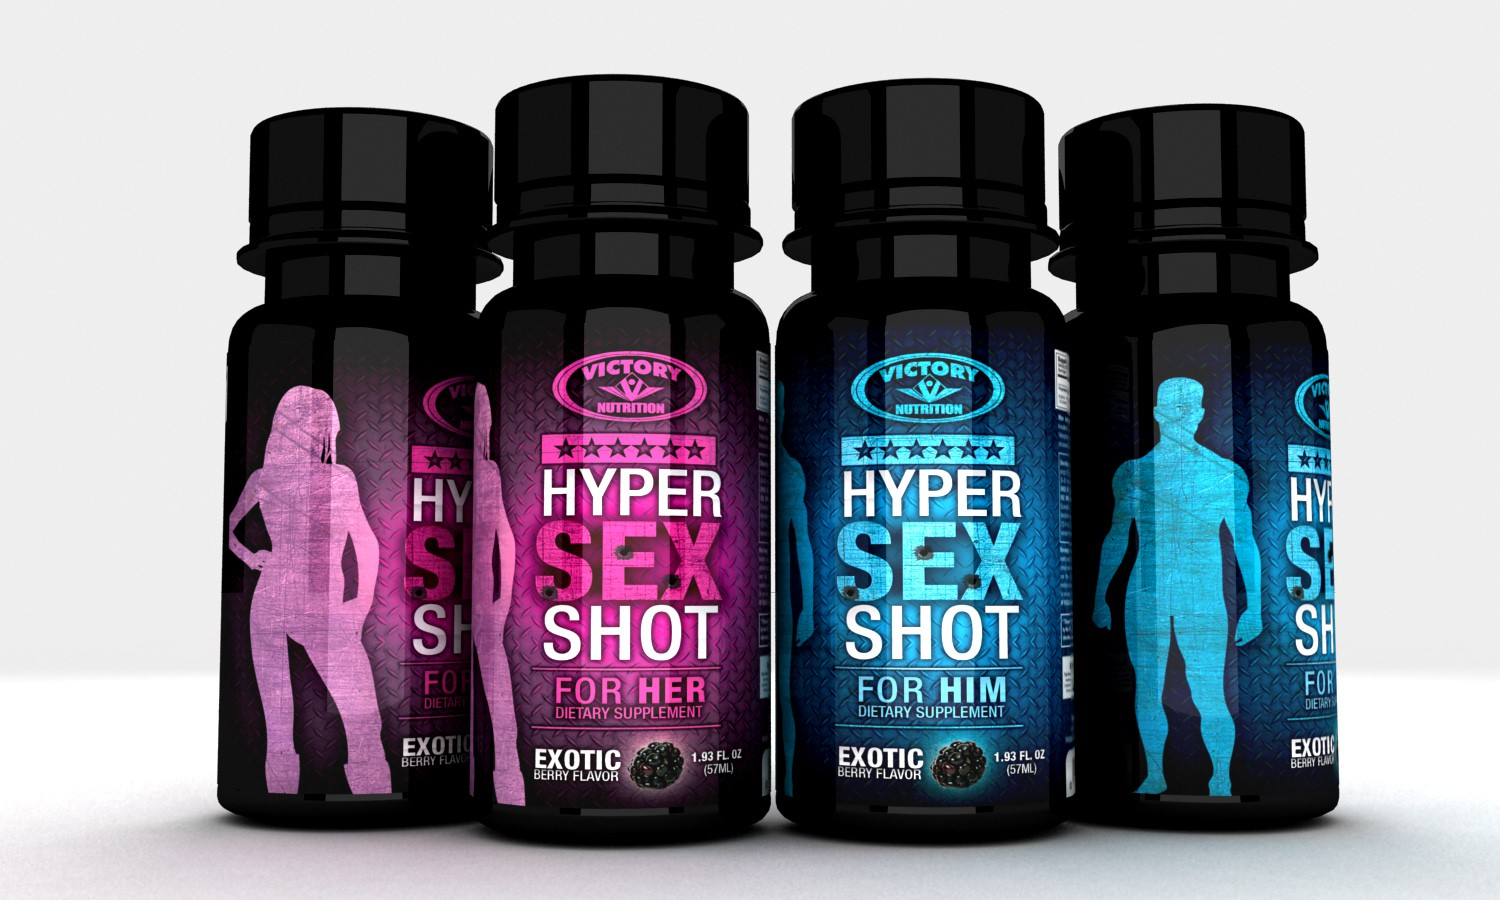 Victory Nutrition HyperSexShot needs a new print or packaging design